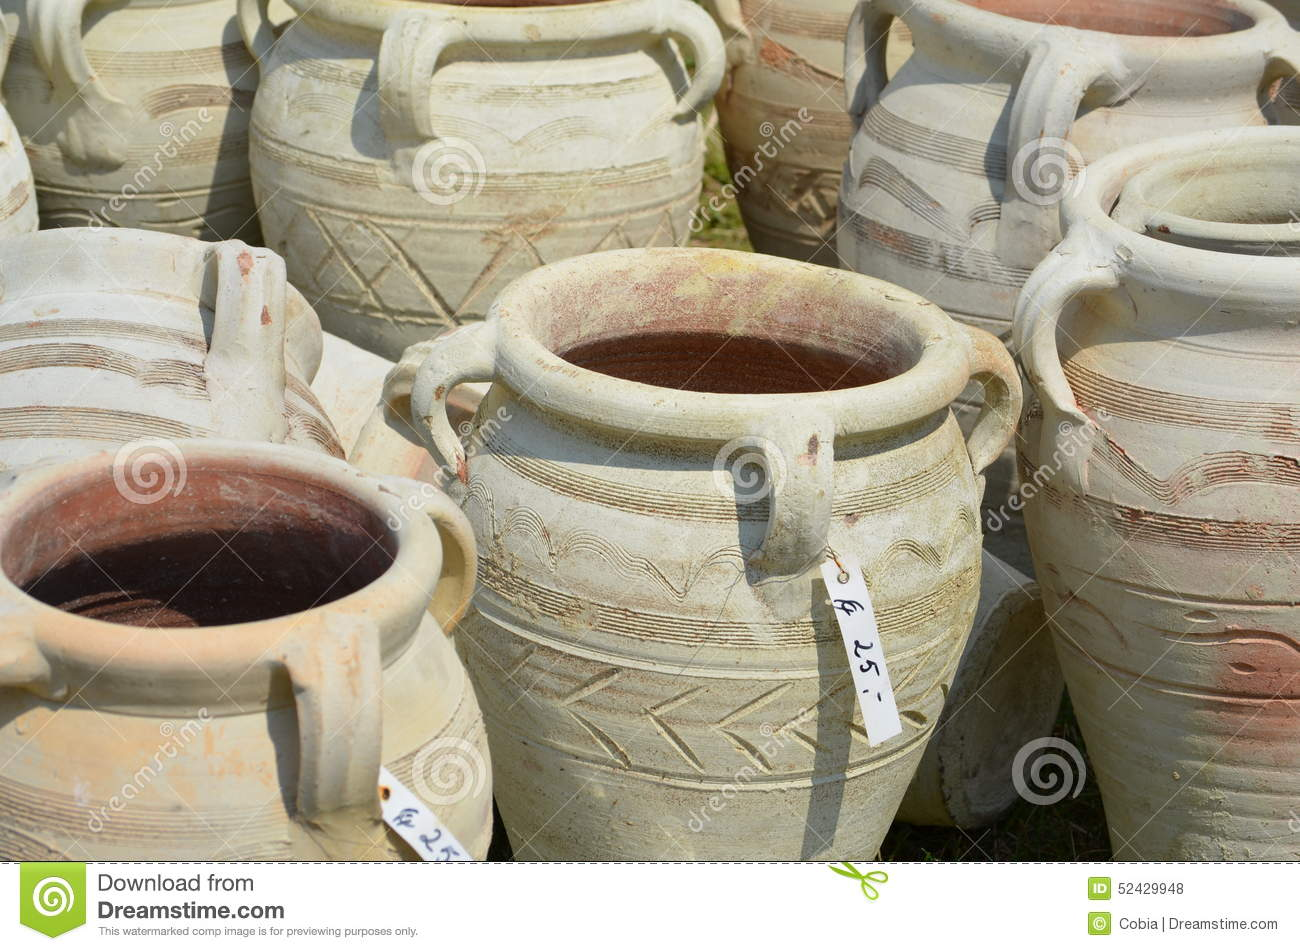 Amphores comme poterie de jardin photo stock image 52429948 for Amphore de jardin